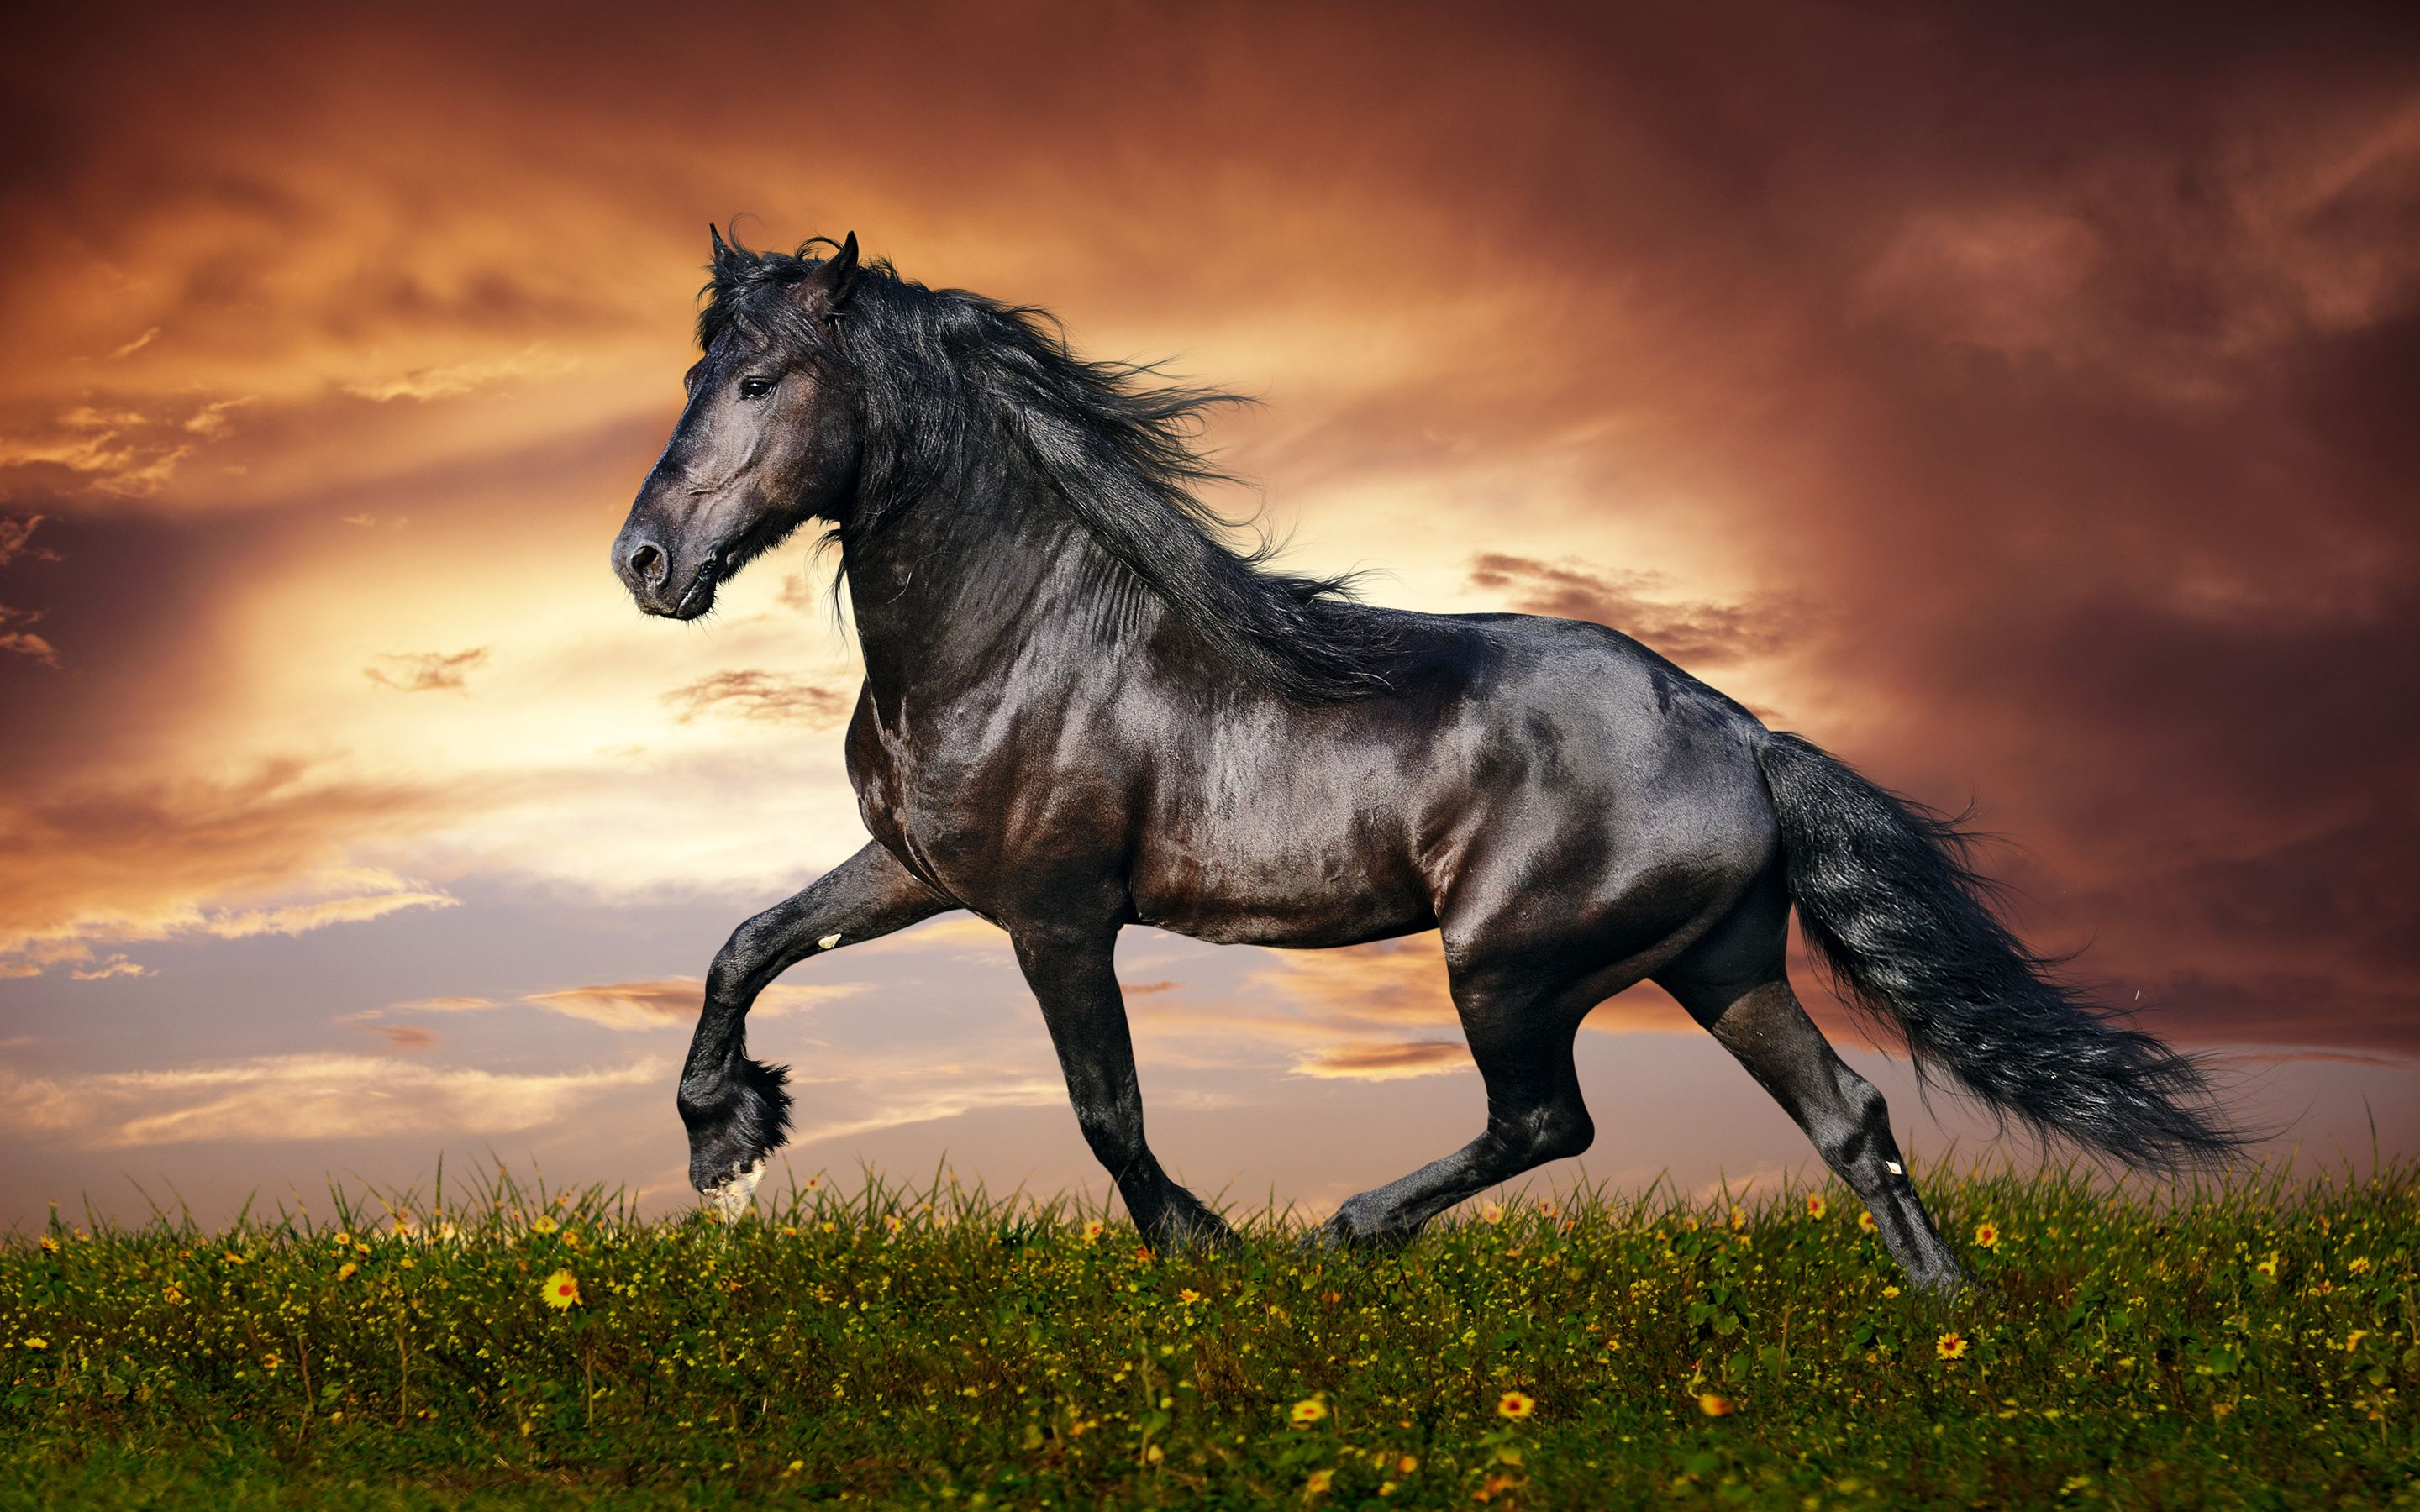 35 Most Beautiful Horse Pictures and Images | Horses: Real ... - photo#22